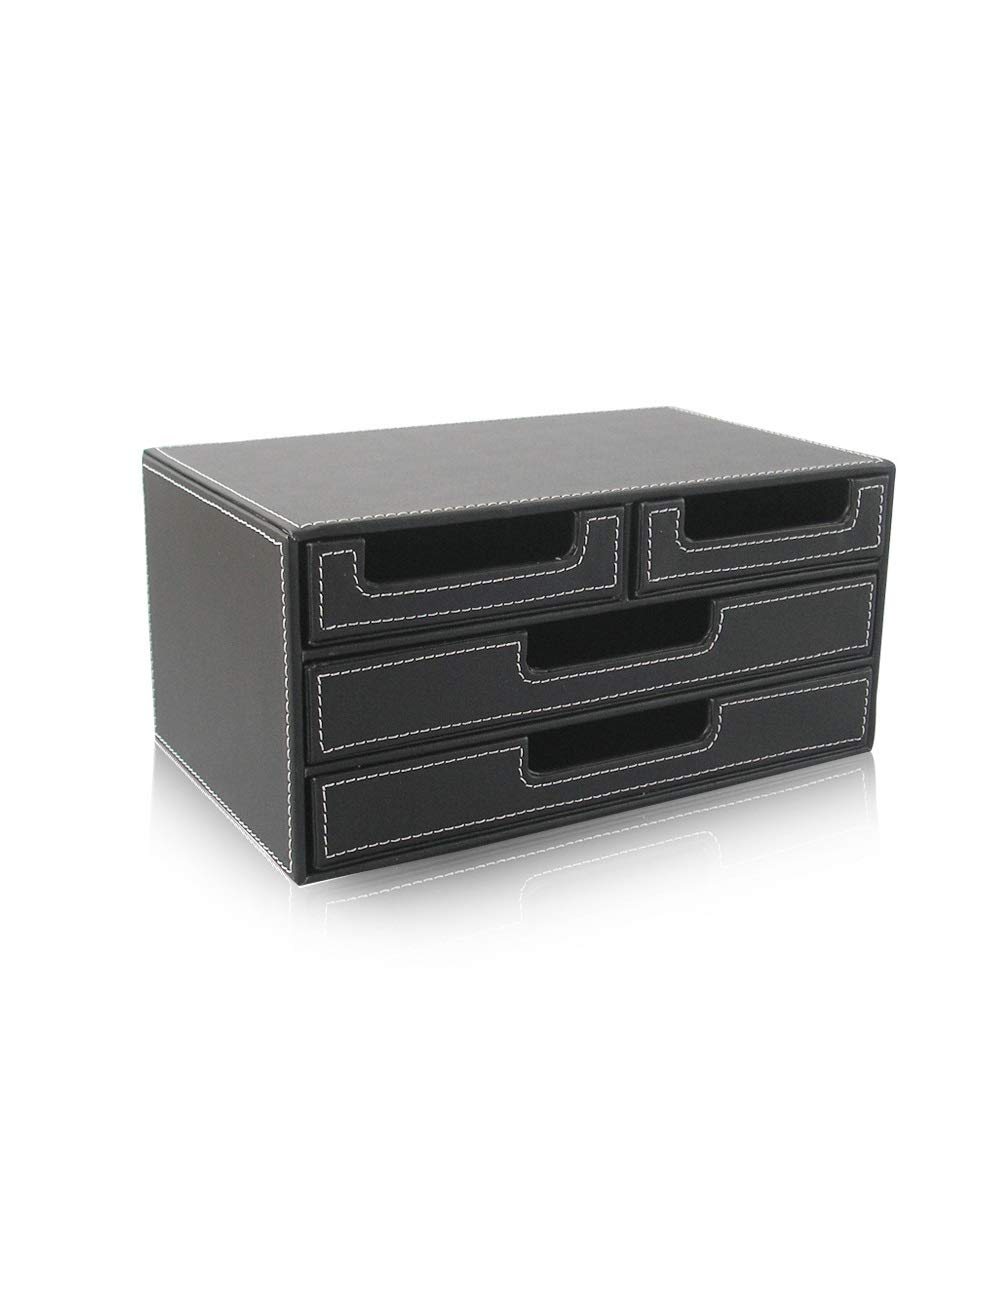 File Cabinet Drawer Showcase Multi-Function Cabinet Desktop Archive Storage Manager 4 Drawers Black Office File Storage Cabinet Storage Box Filing cabinets